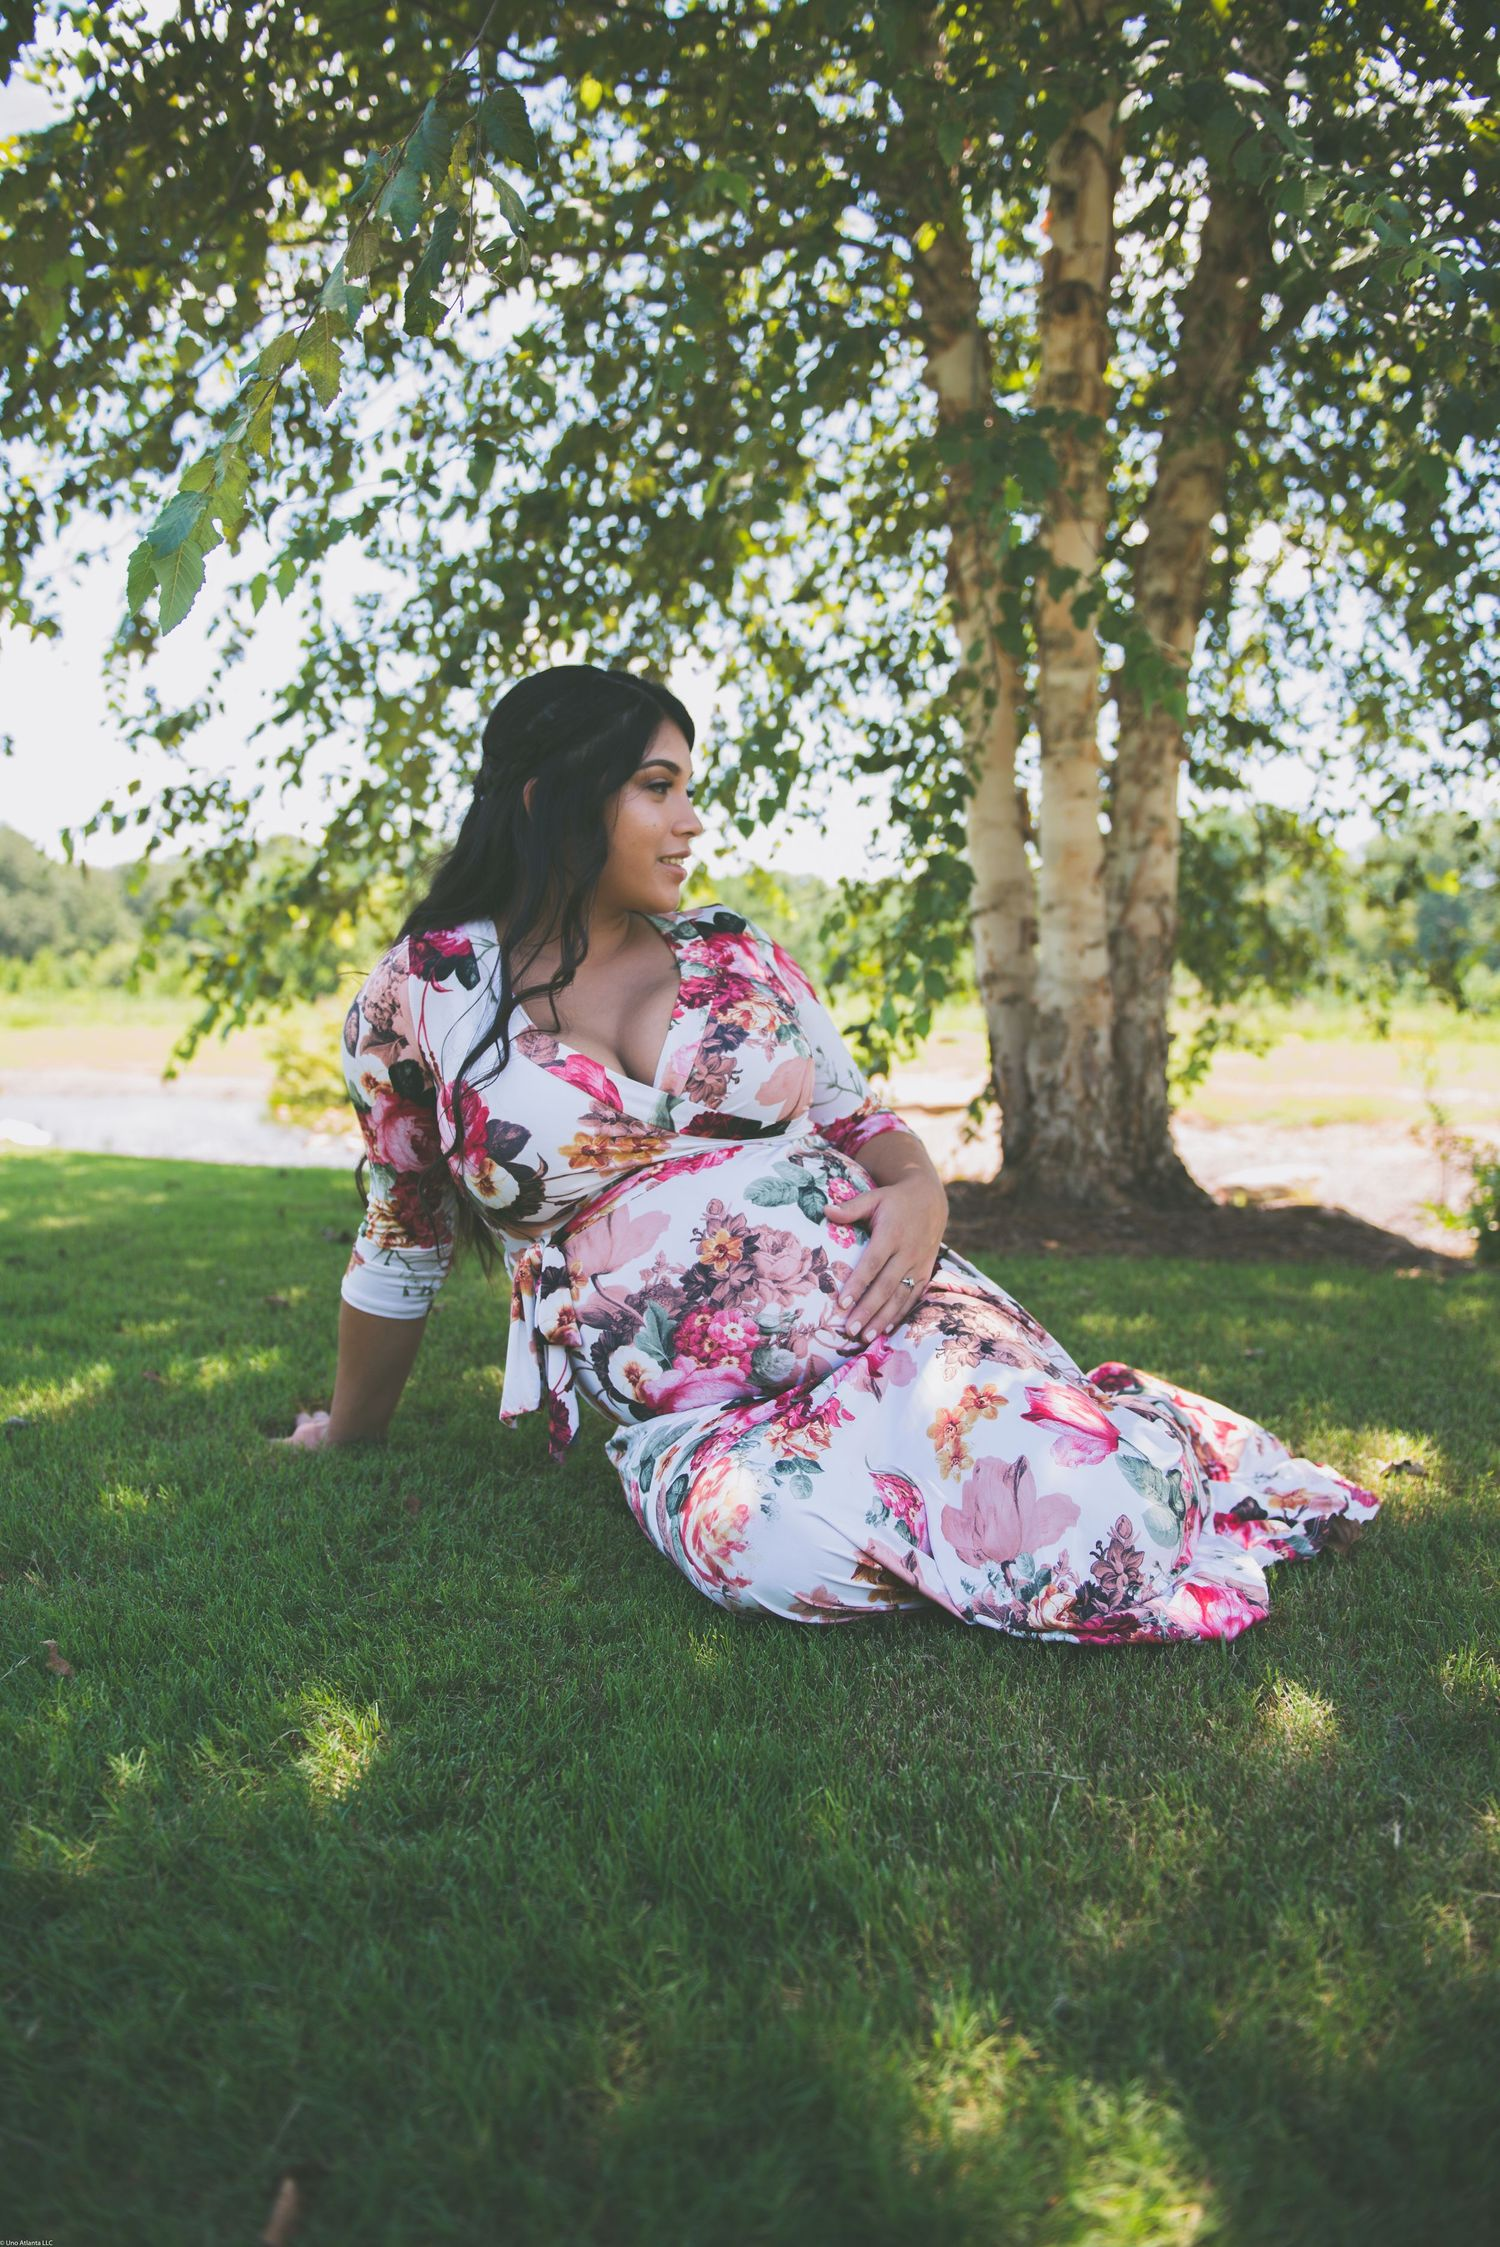 Pregnant mother in flowery dress on grass